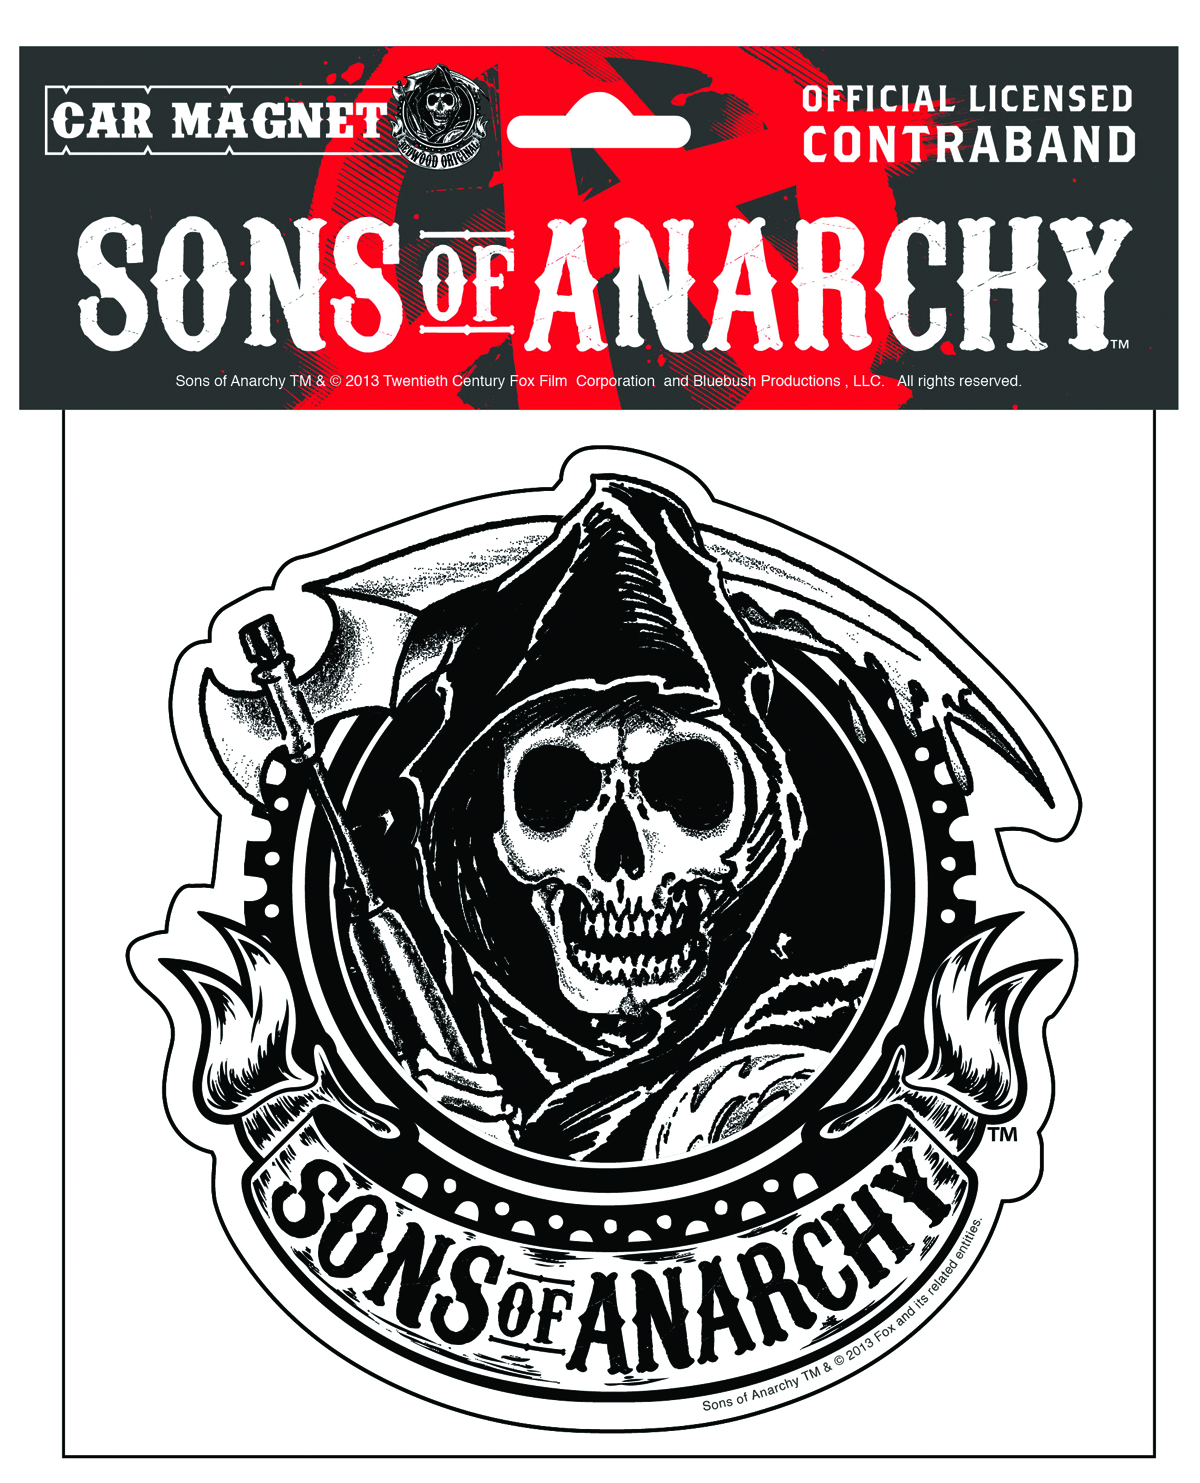 SONS OF ANARCHY S SKULL A CAR MAGNET